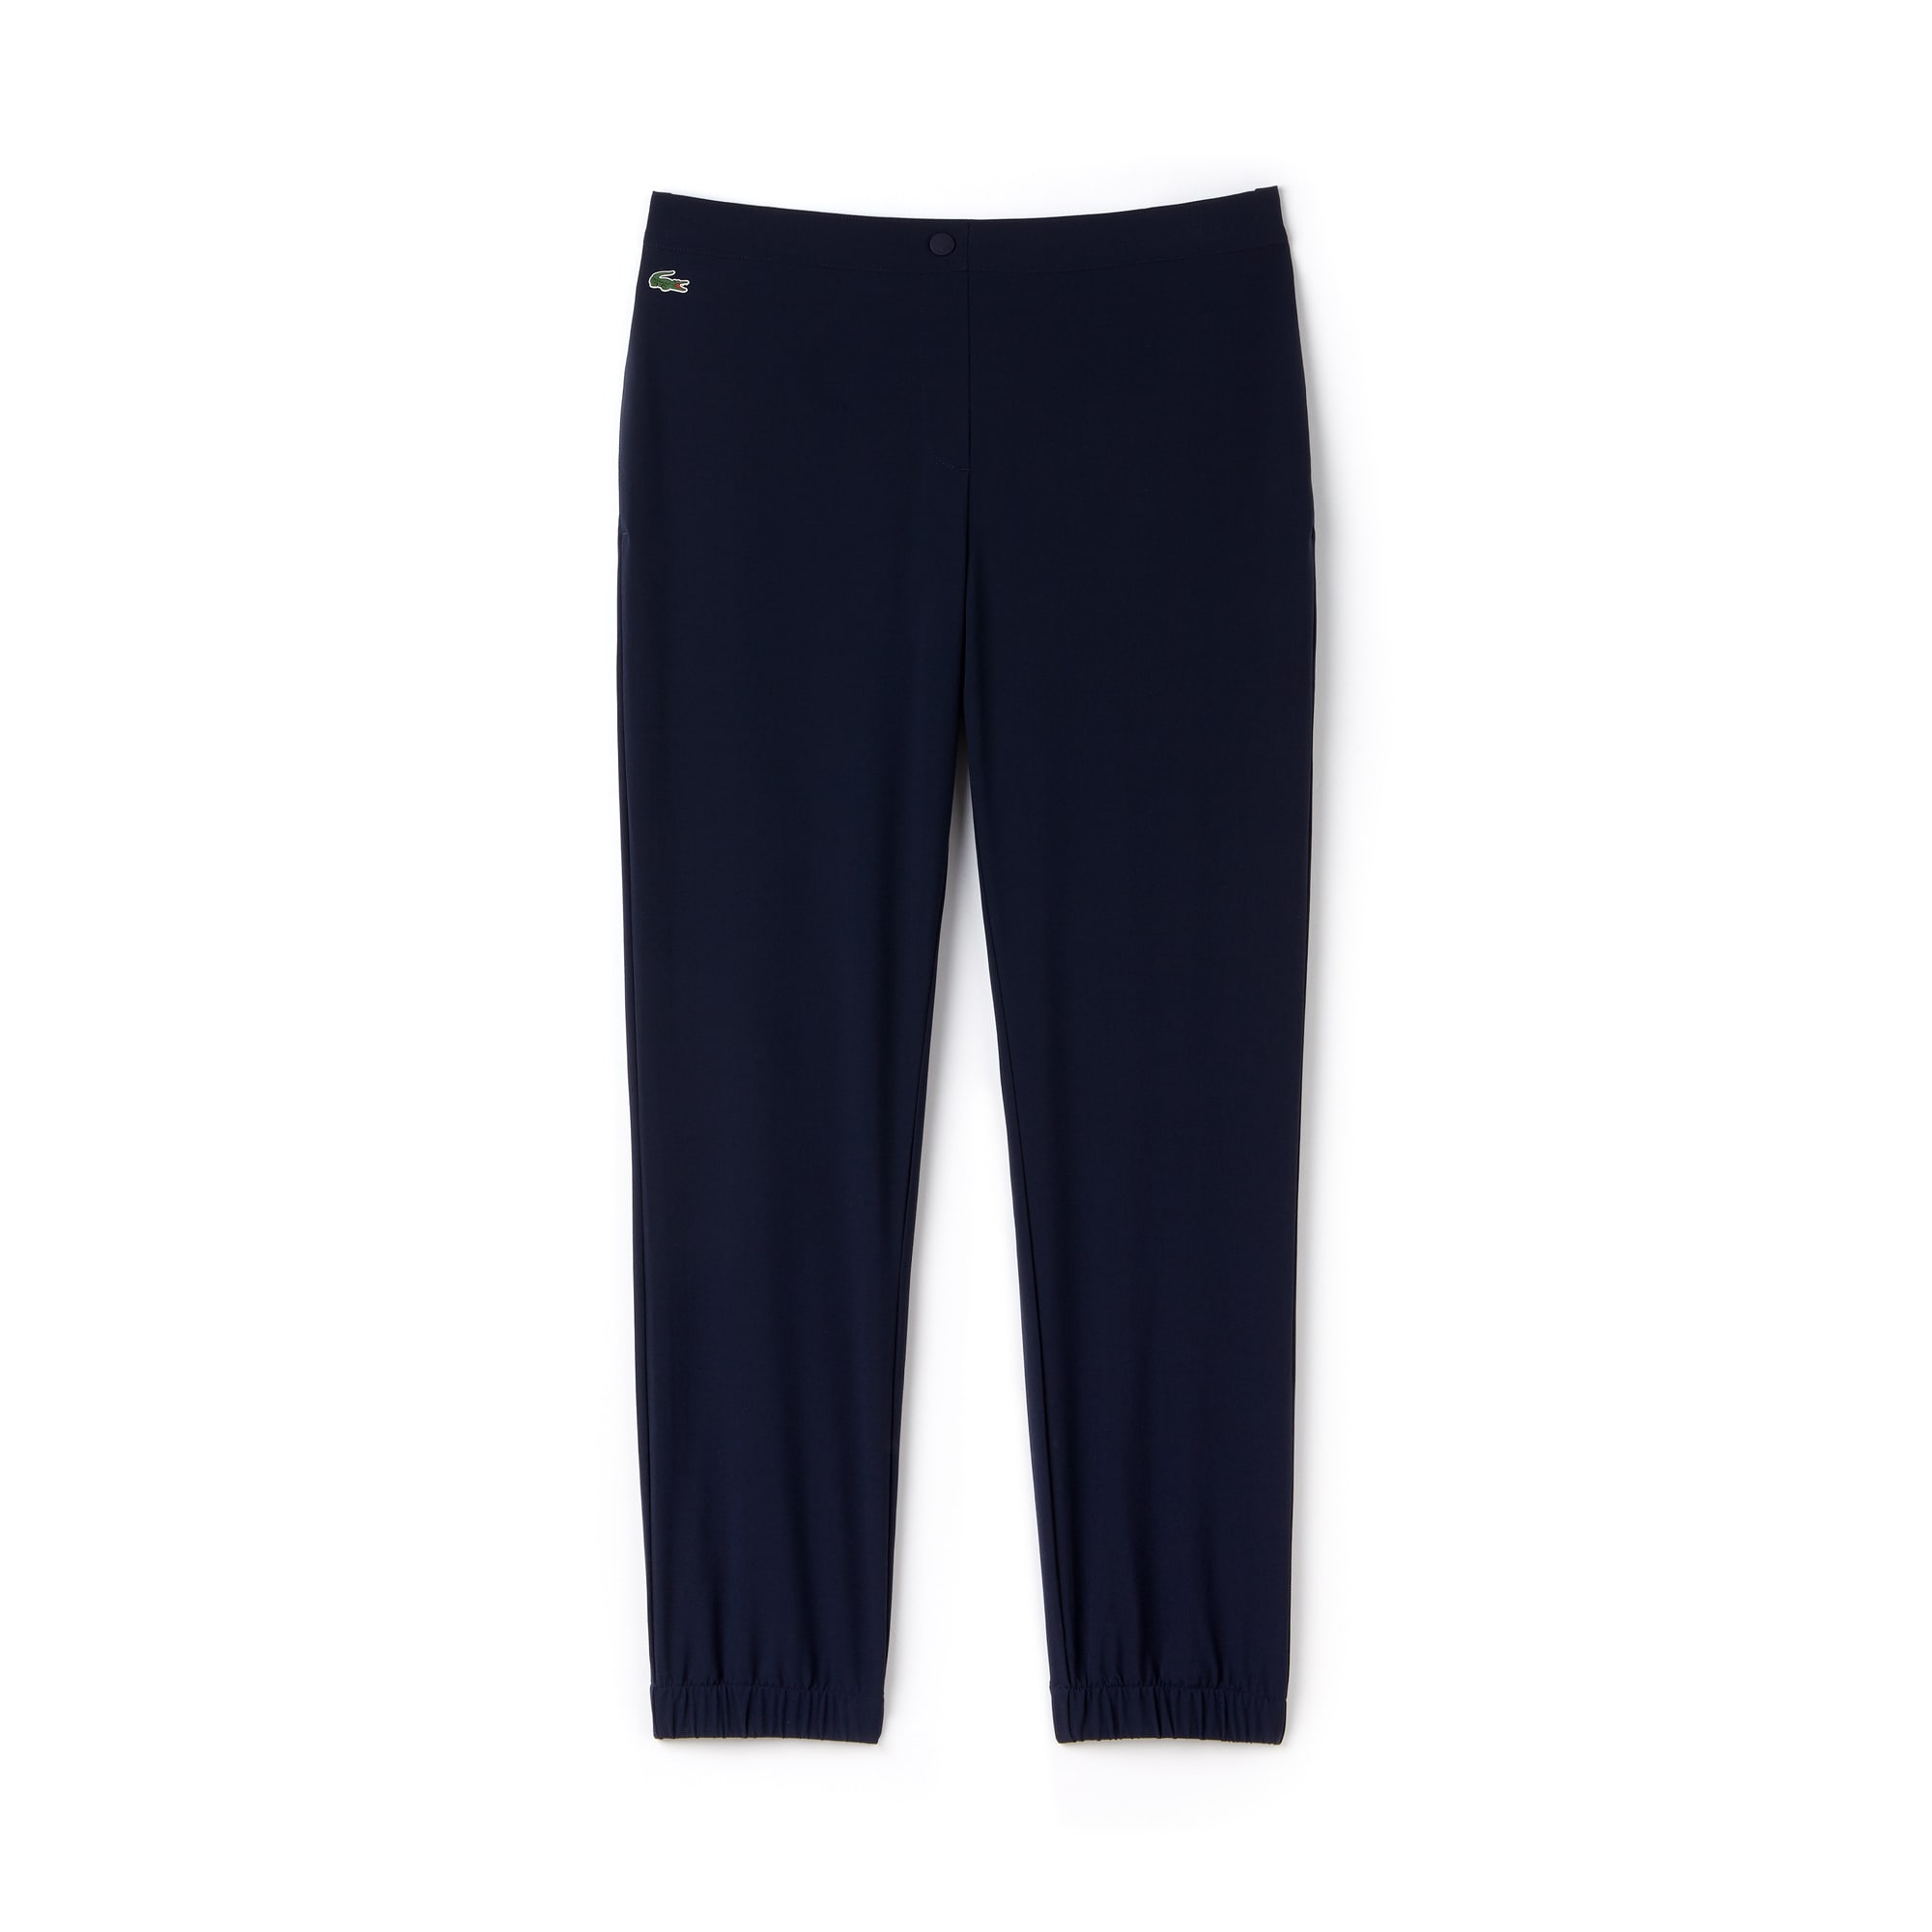 Women's SPORT Technical Midlayer Urban Tennis Sweatpants